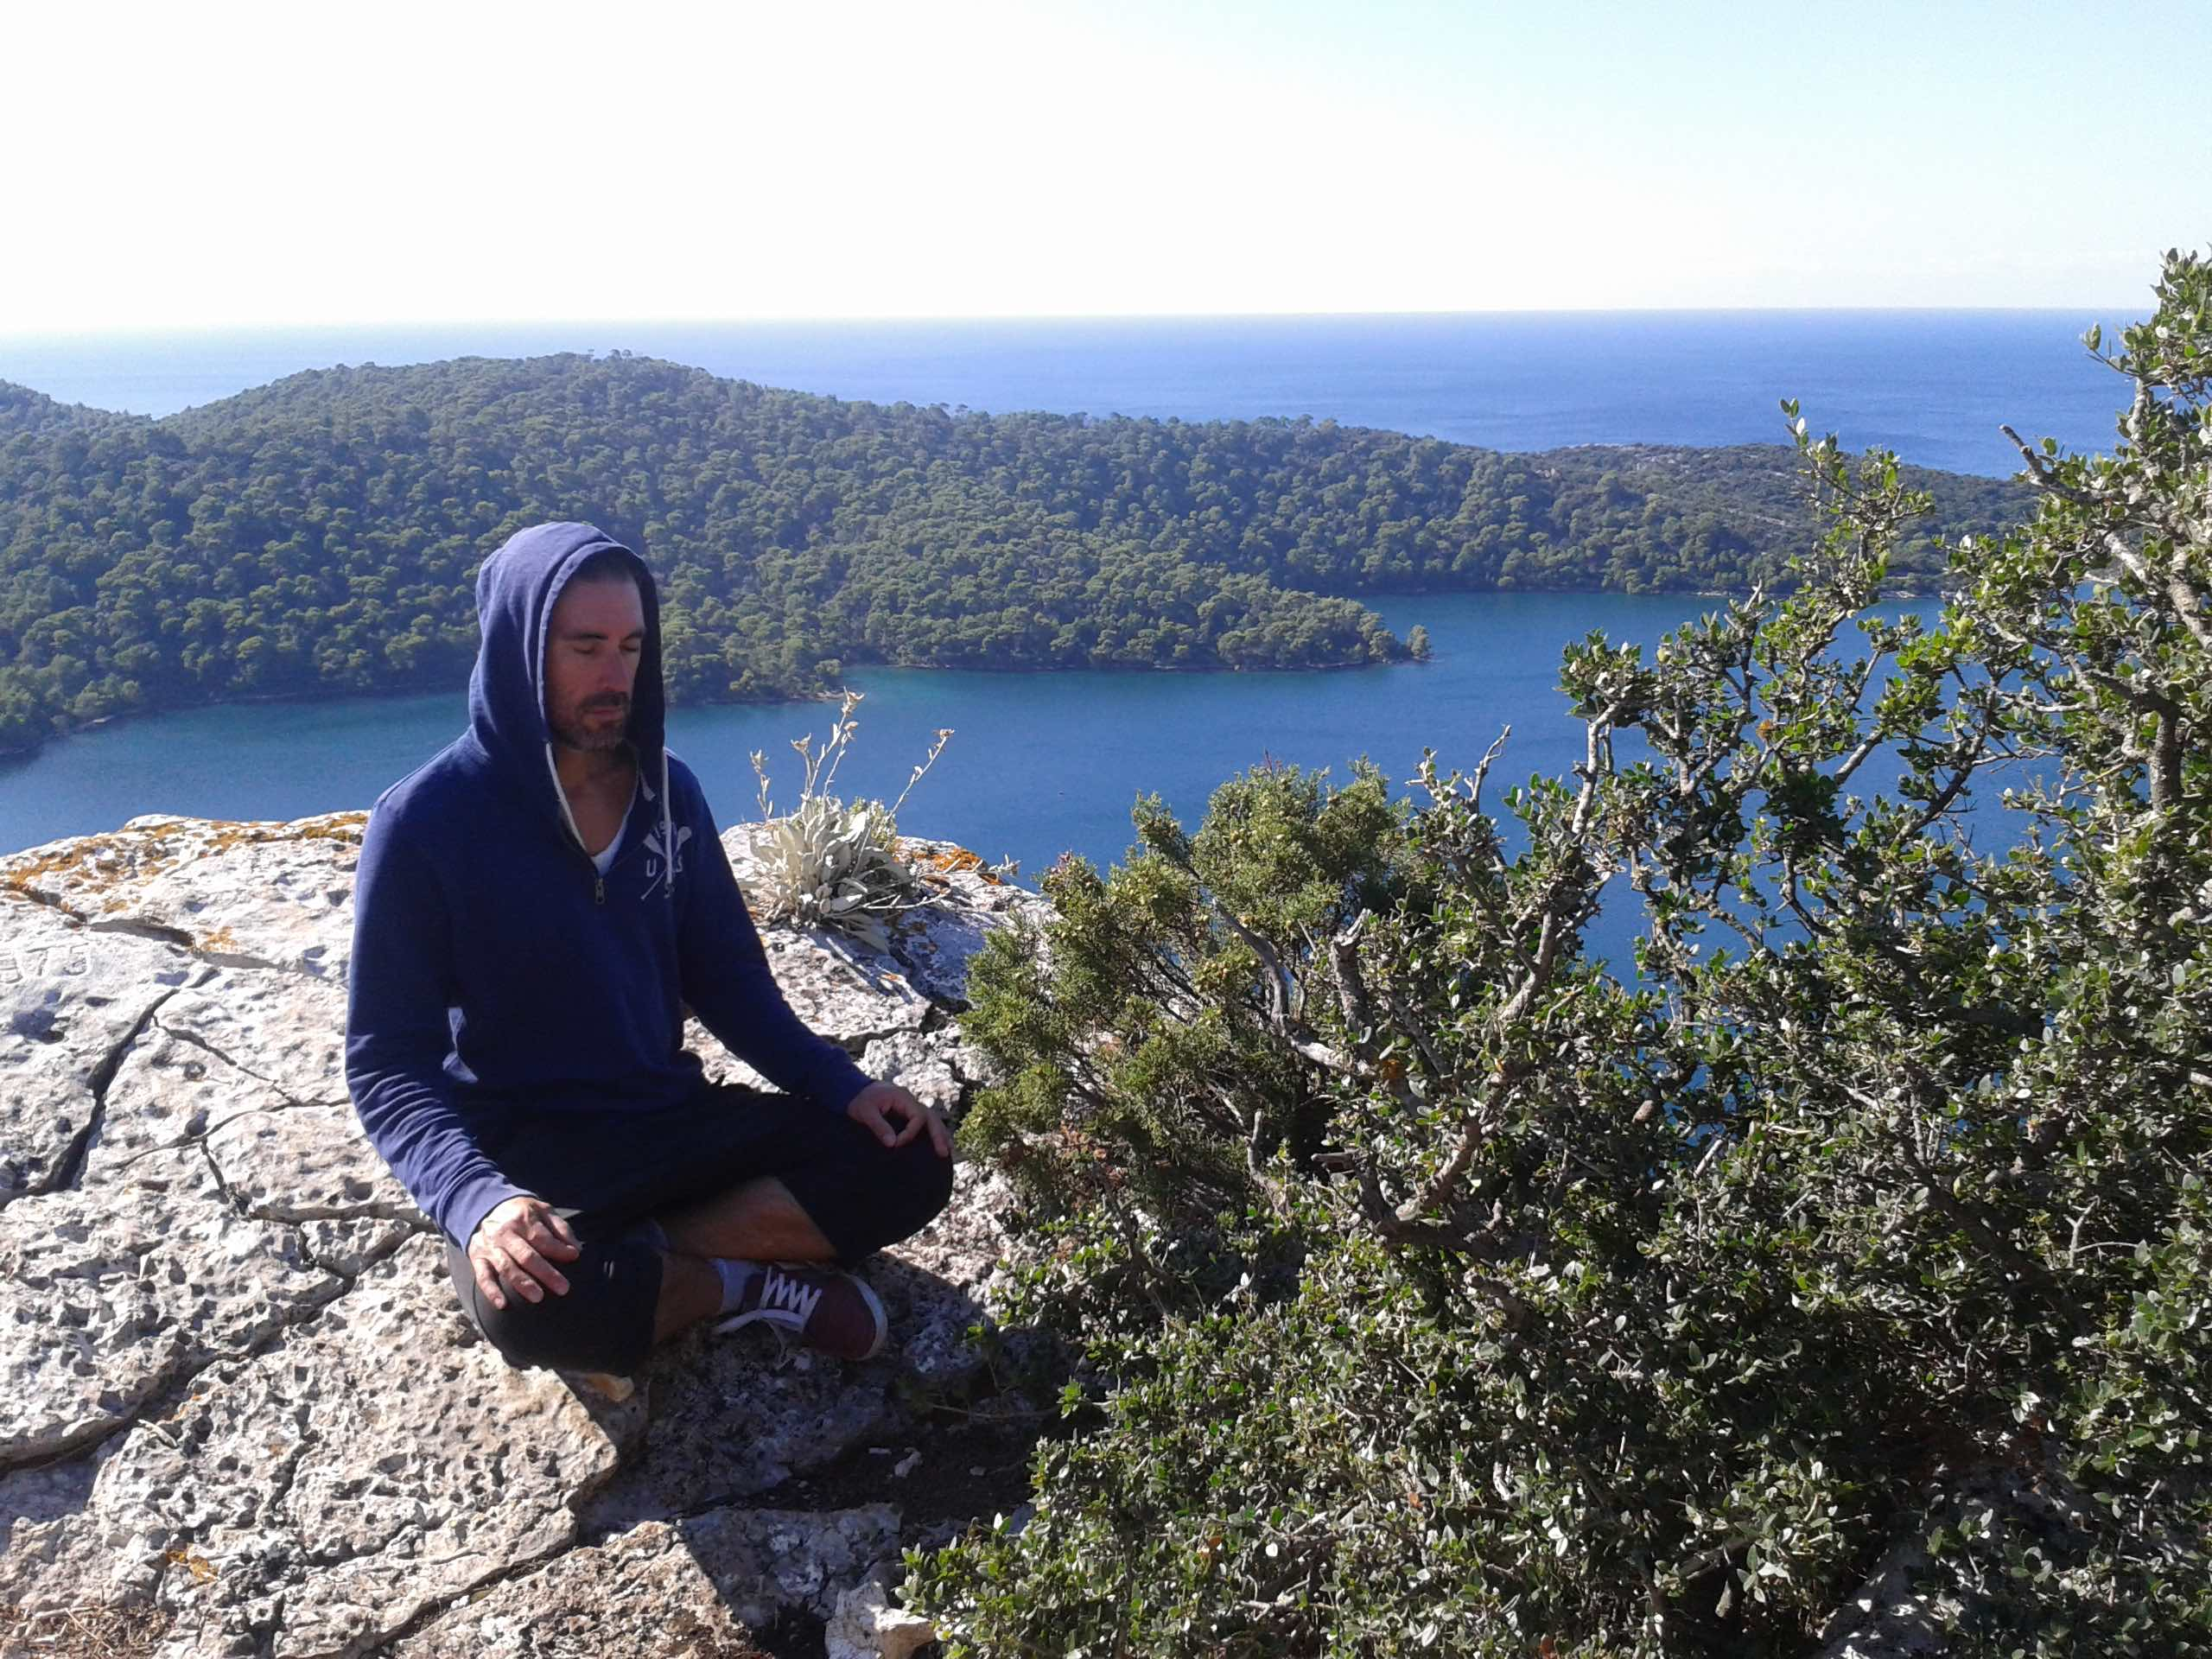 Vincent-Pezet-Meditation-Nature-Croatia